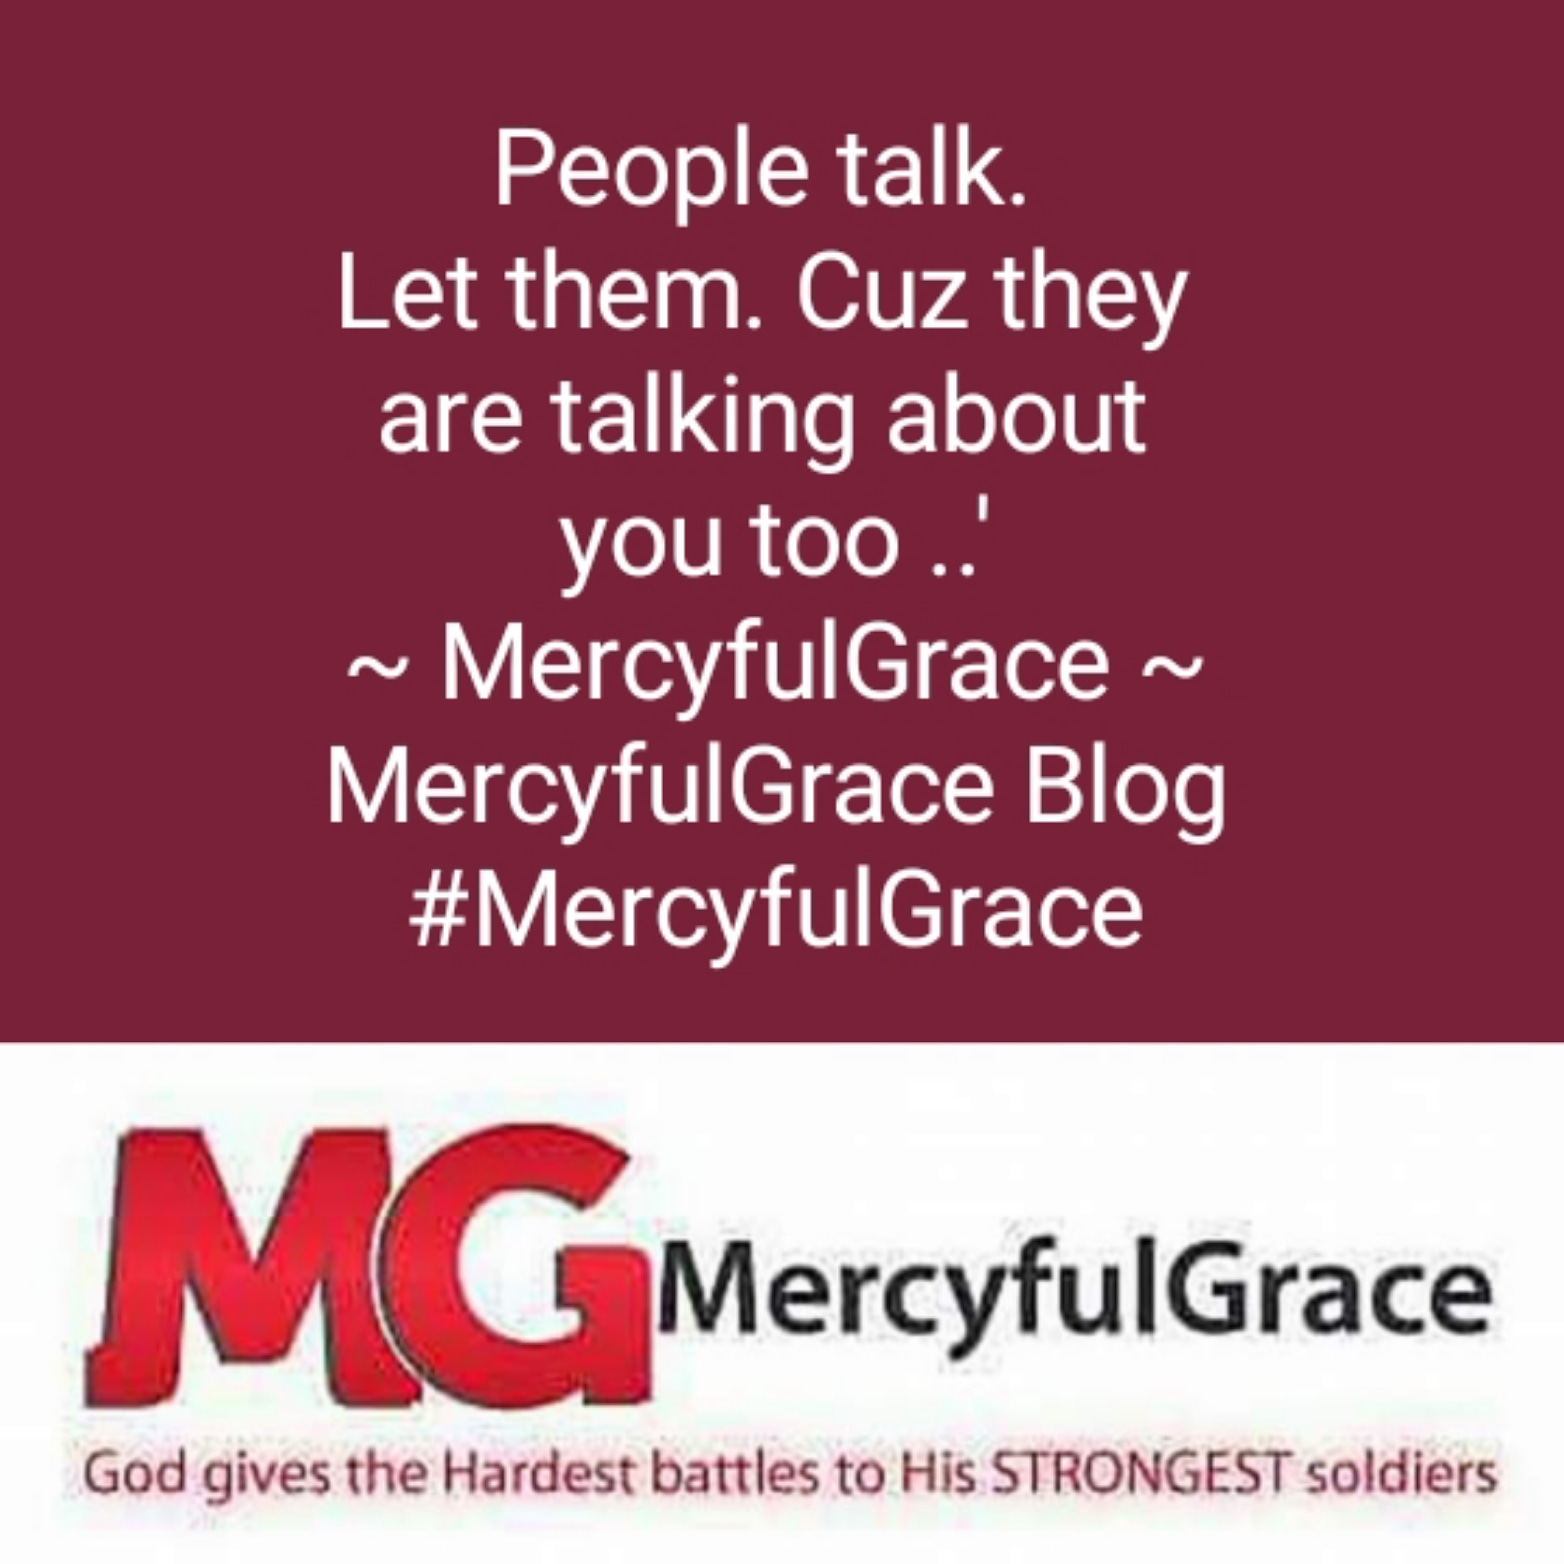 People talk - mercyfulgrace blog